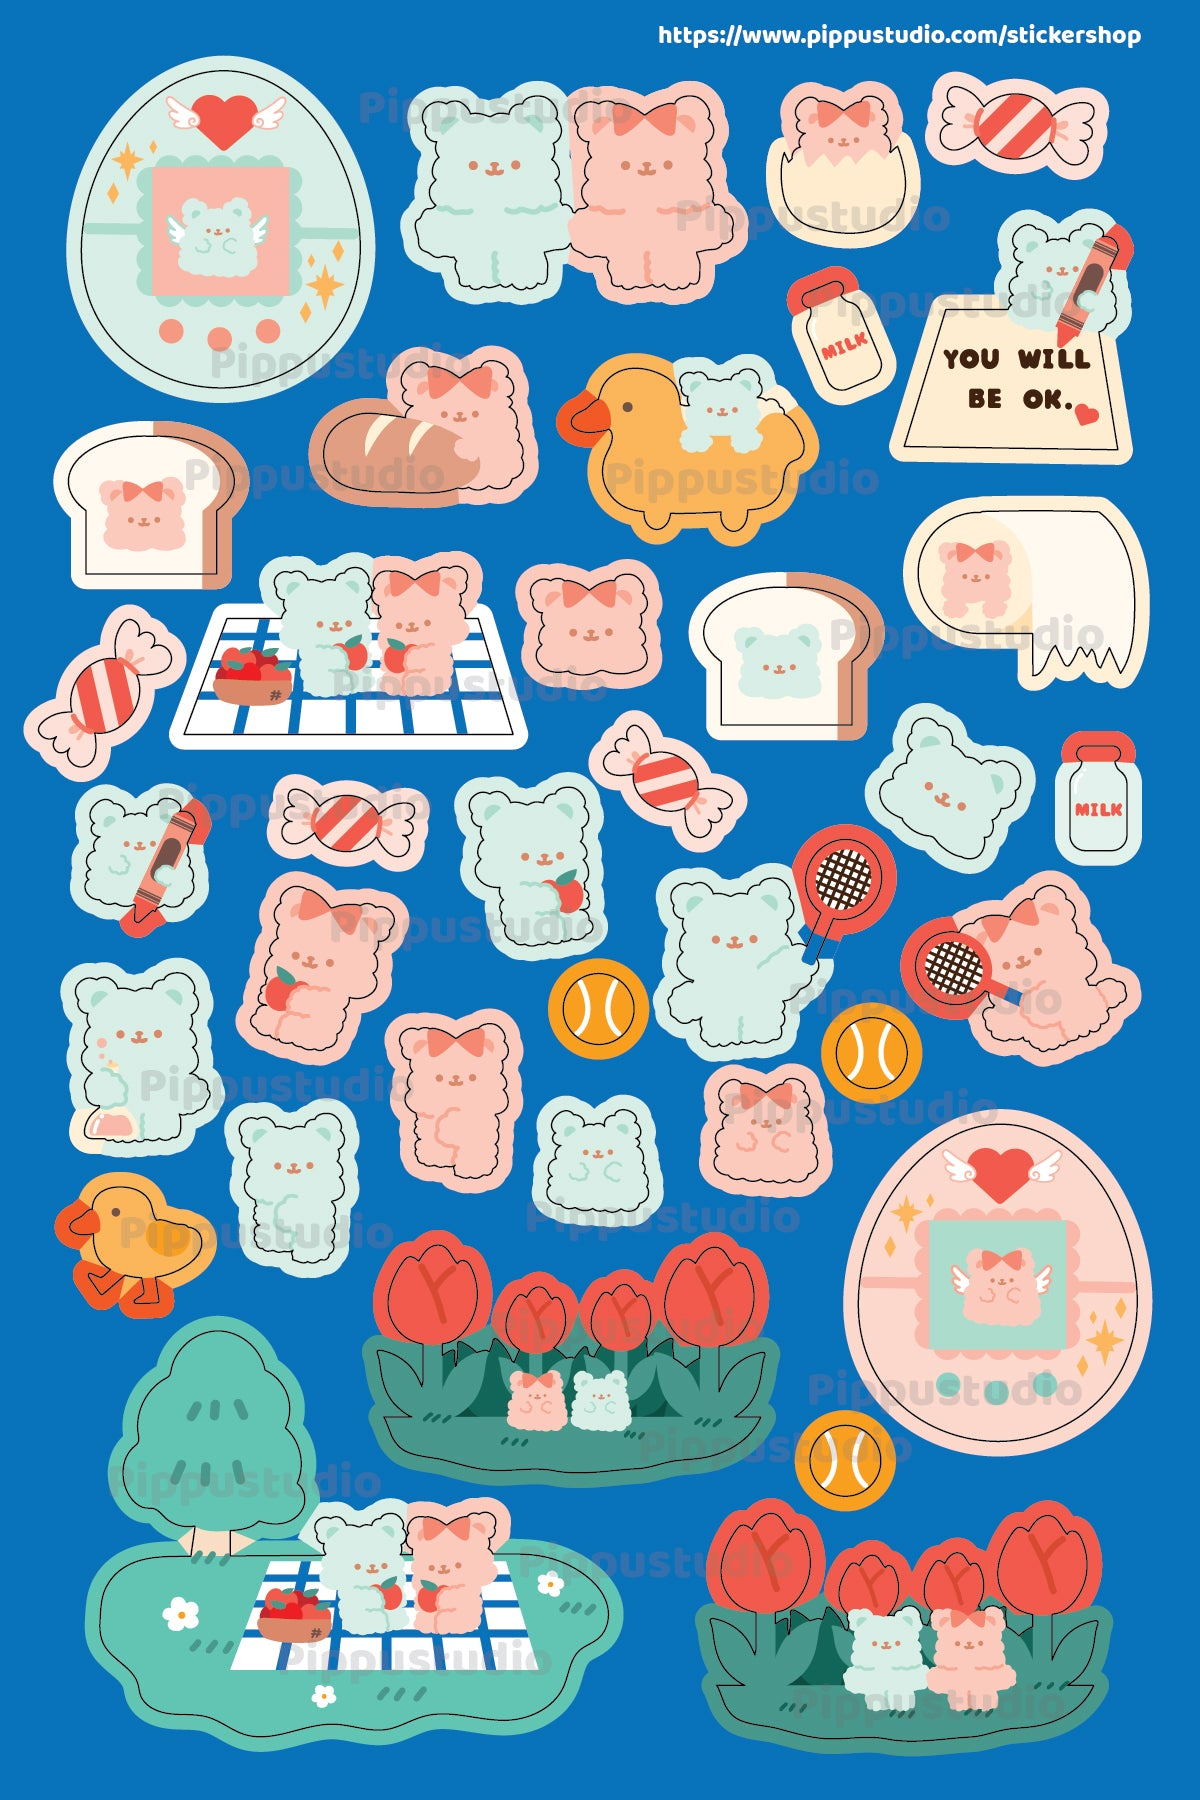 A50-Tamabear sticker sheet